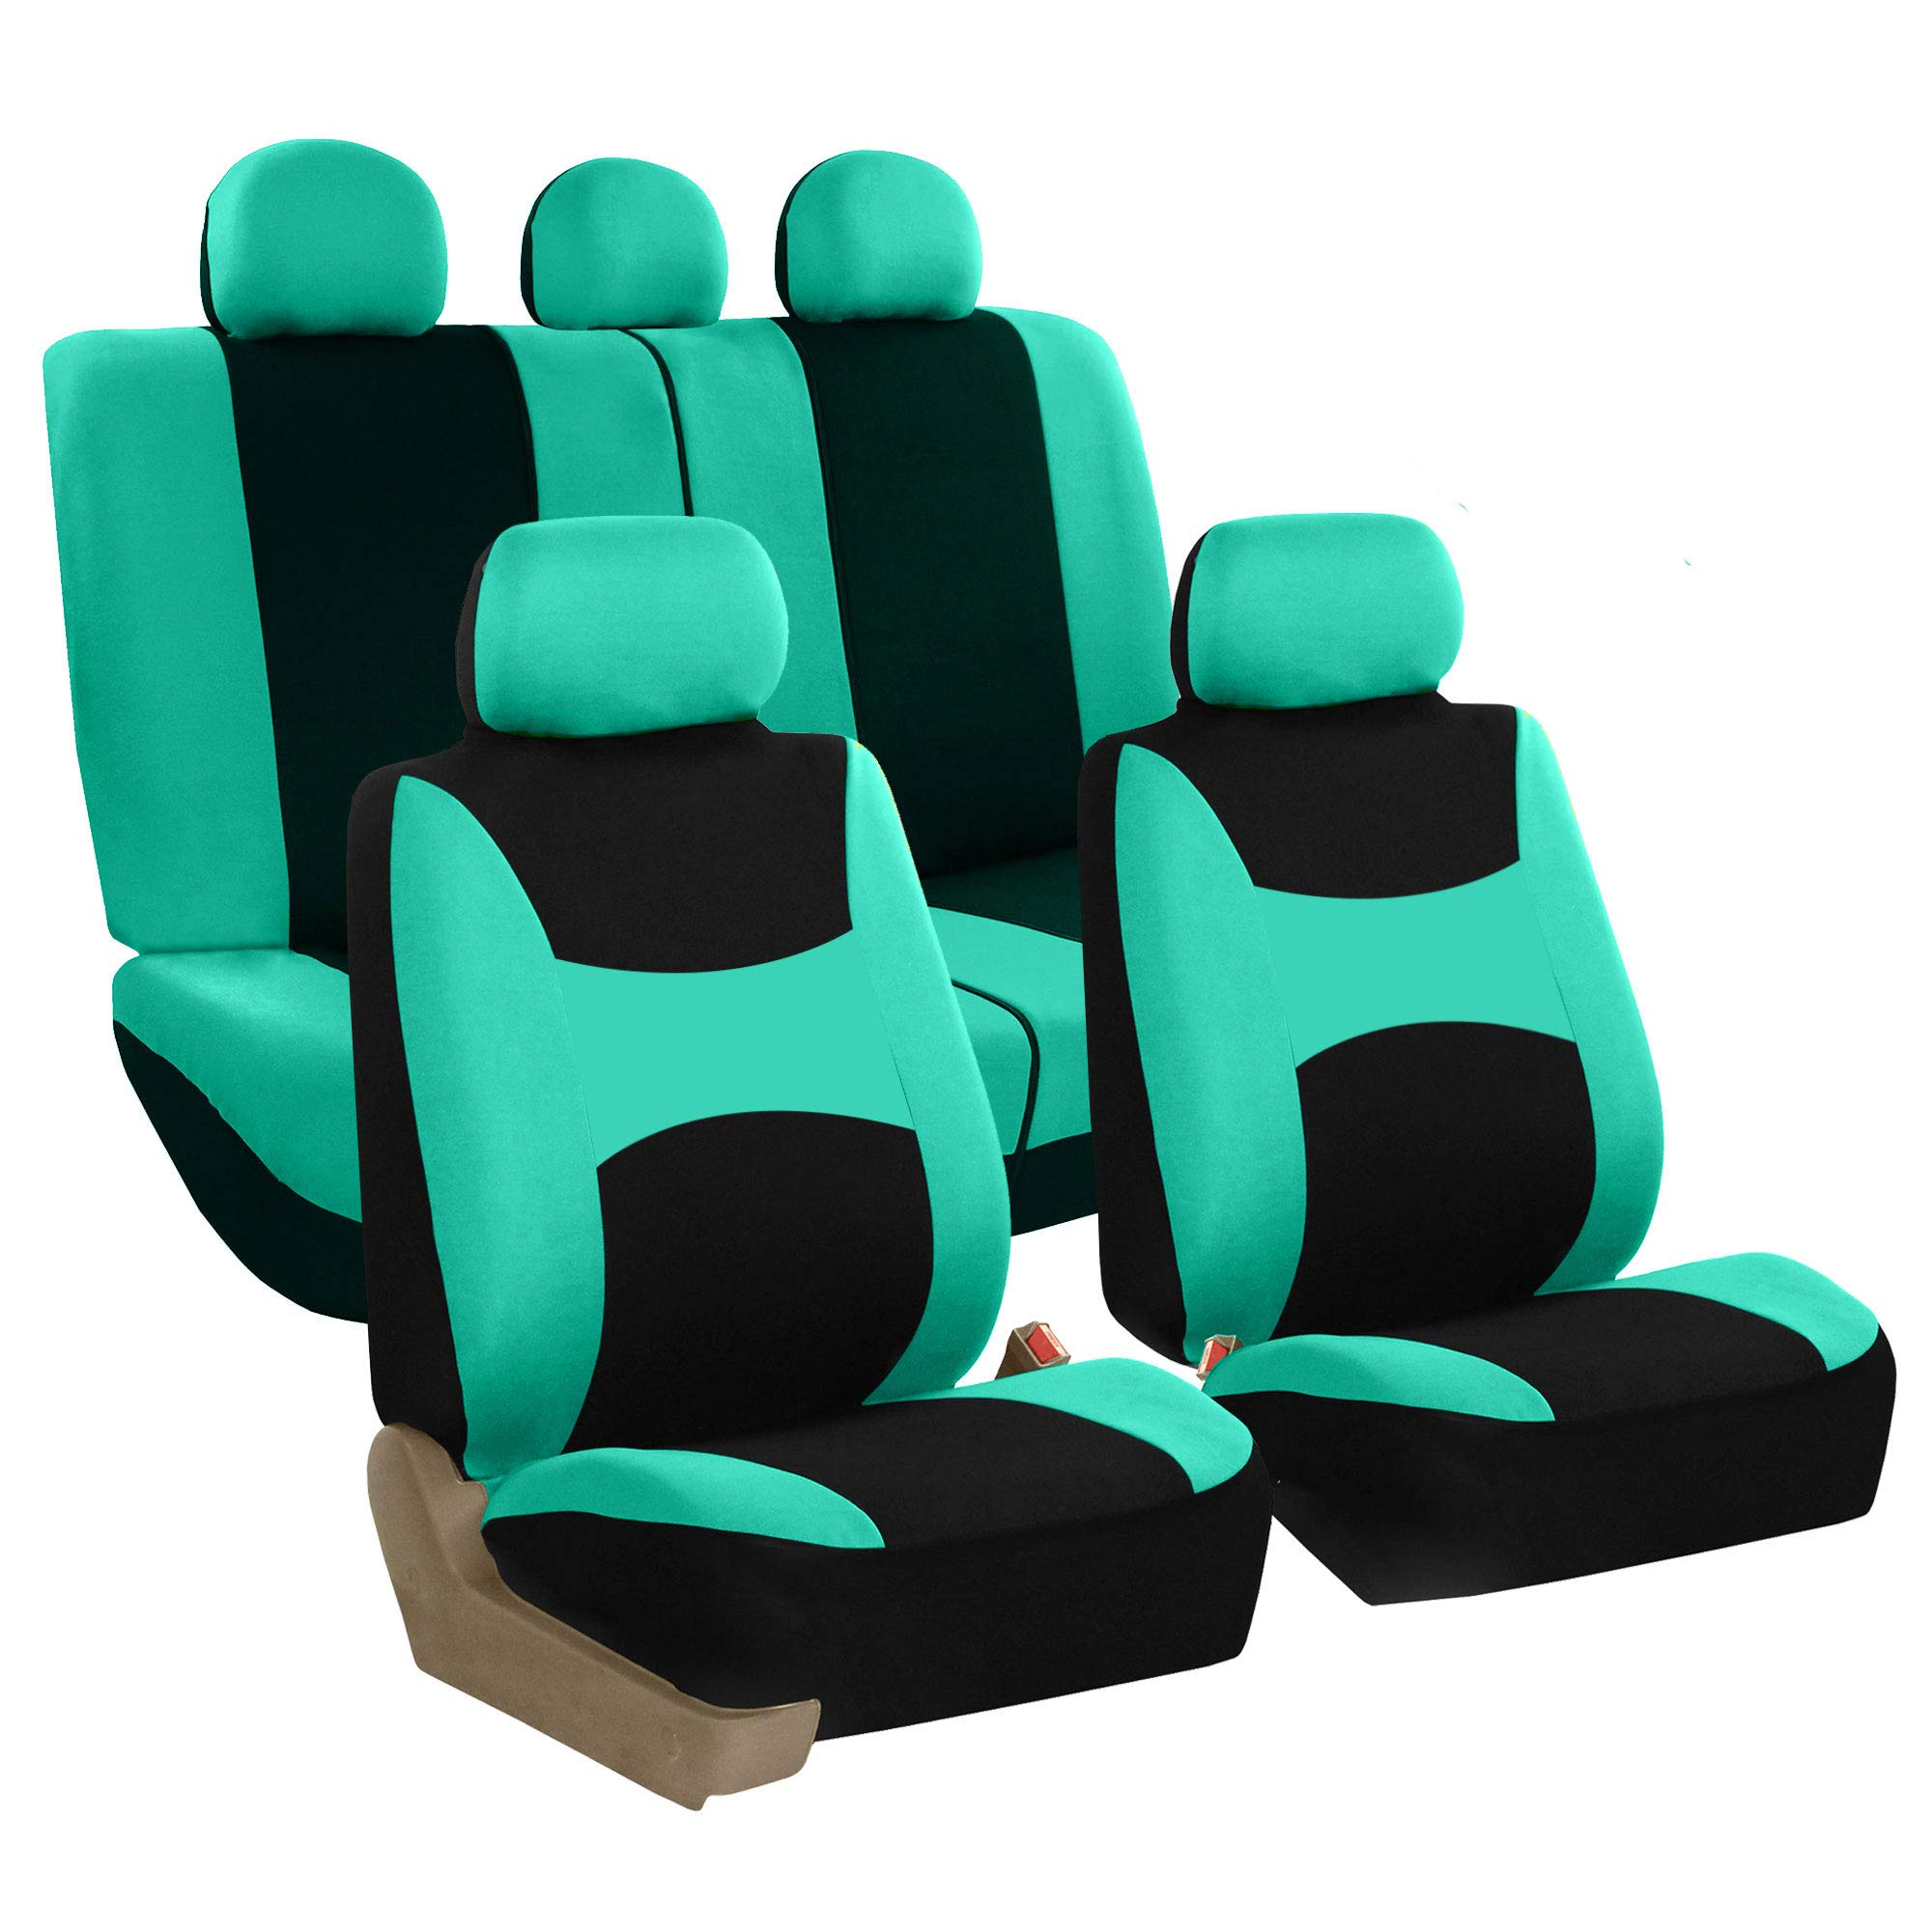 FH Group FB030MINT115 full seat cover (Side Airbag Compatible with Split Bench Mint) by FH Group